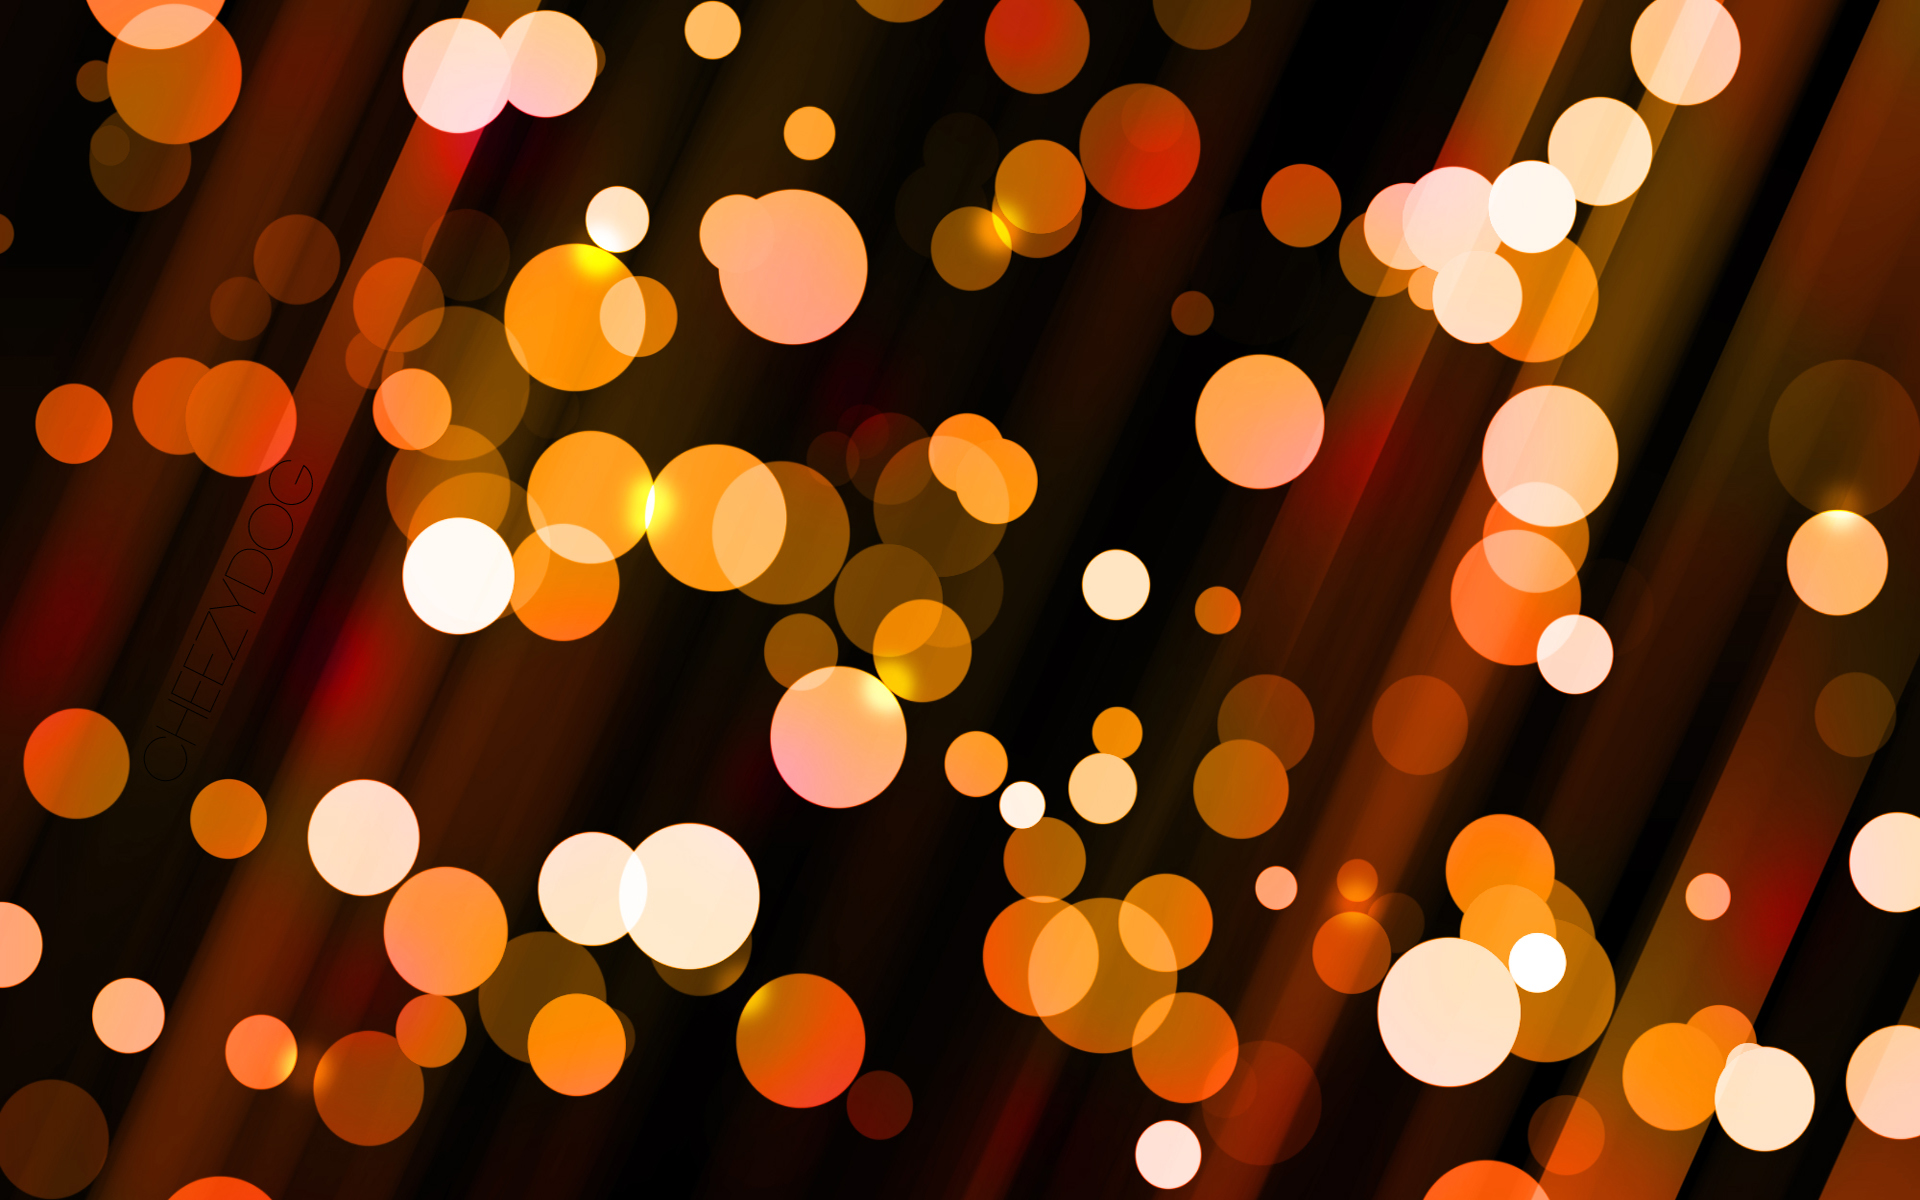 wallpaper.wiki-Miscellaneous-digital-art-bokeh-lights-PIC-WPC002884